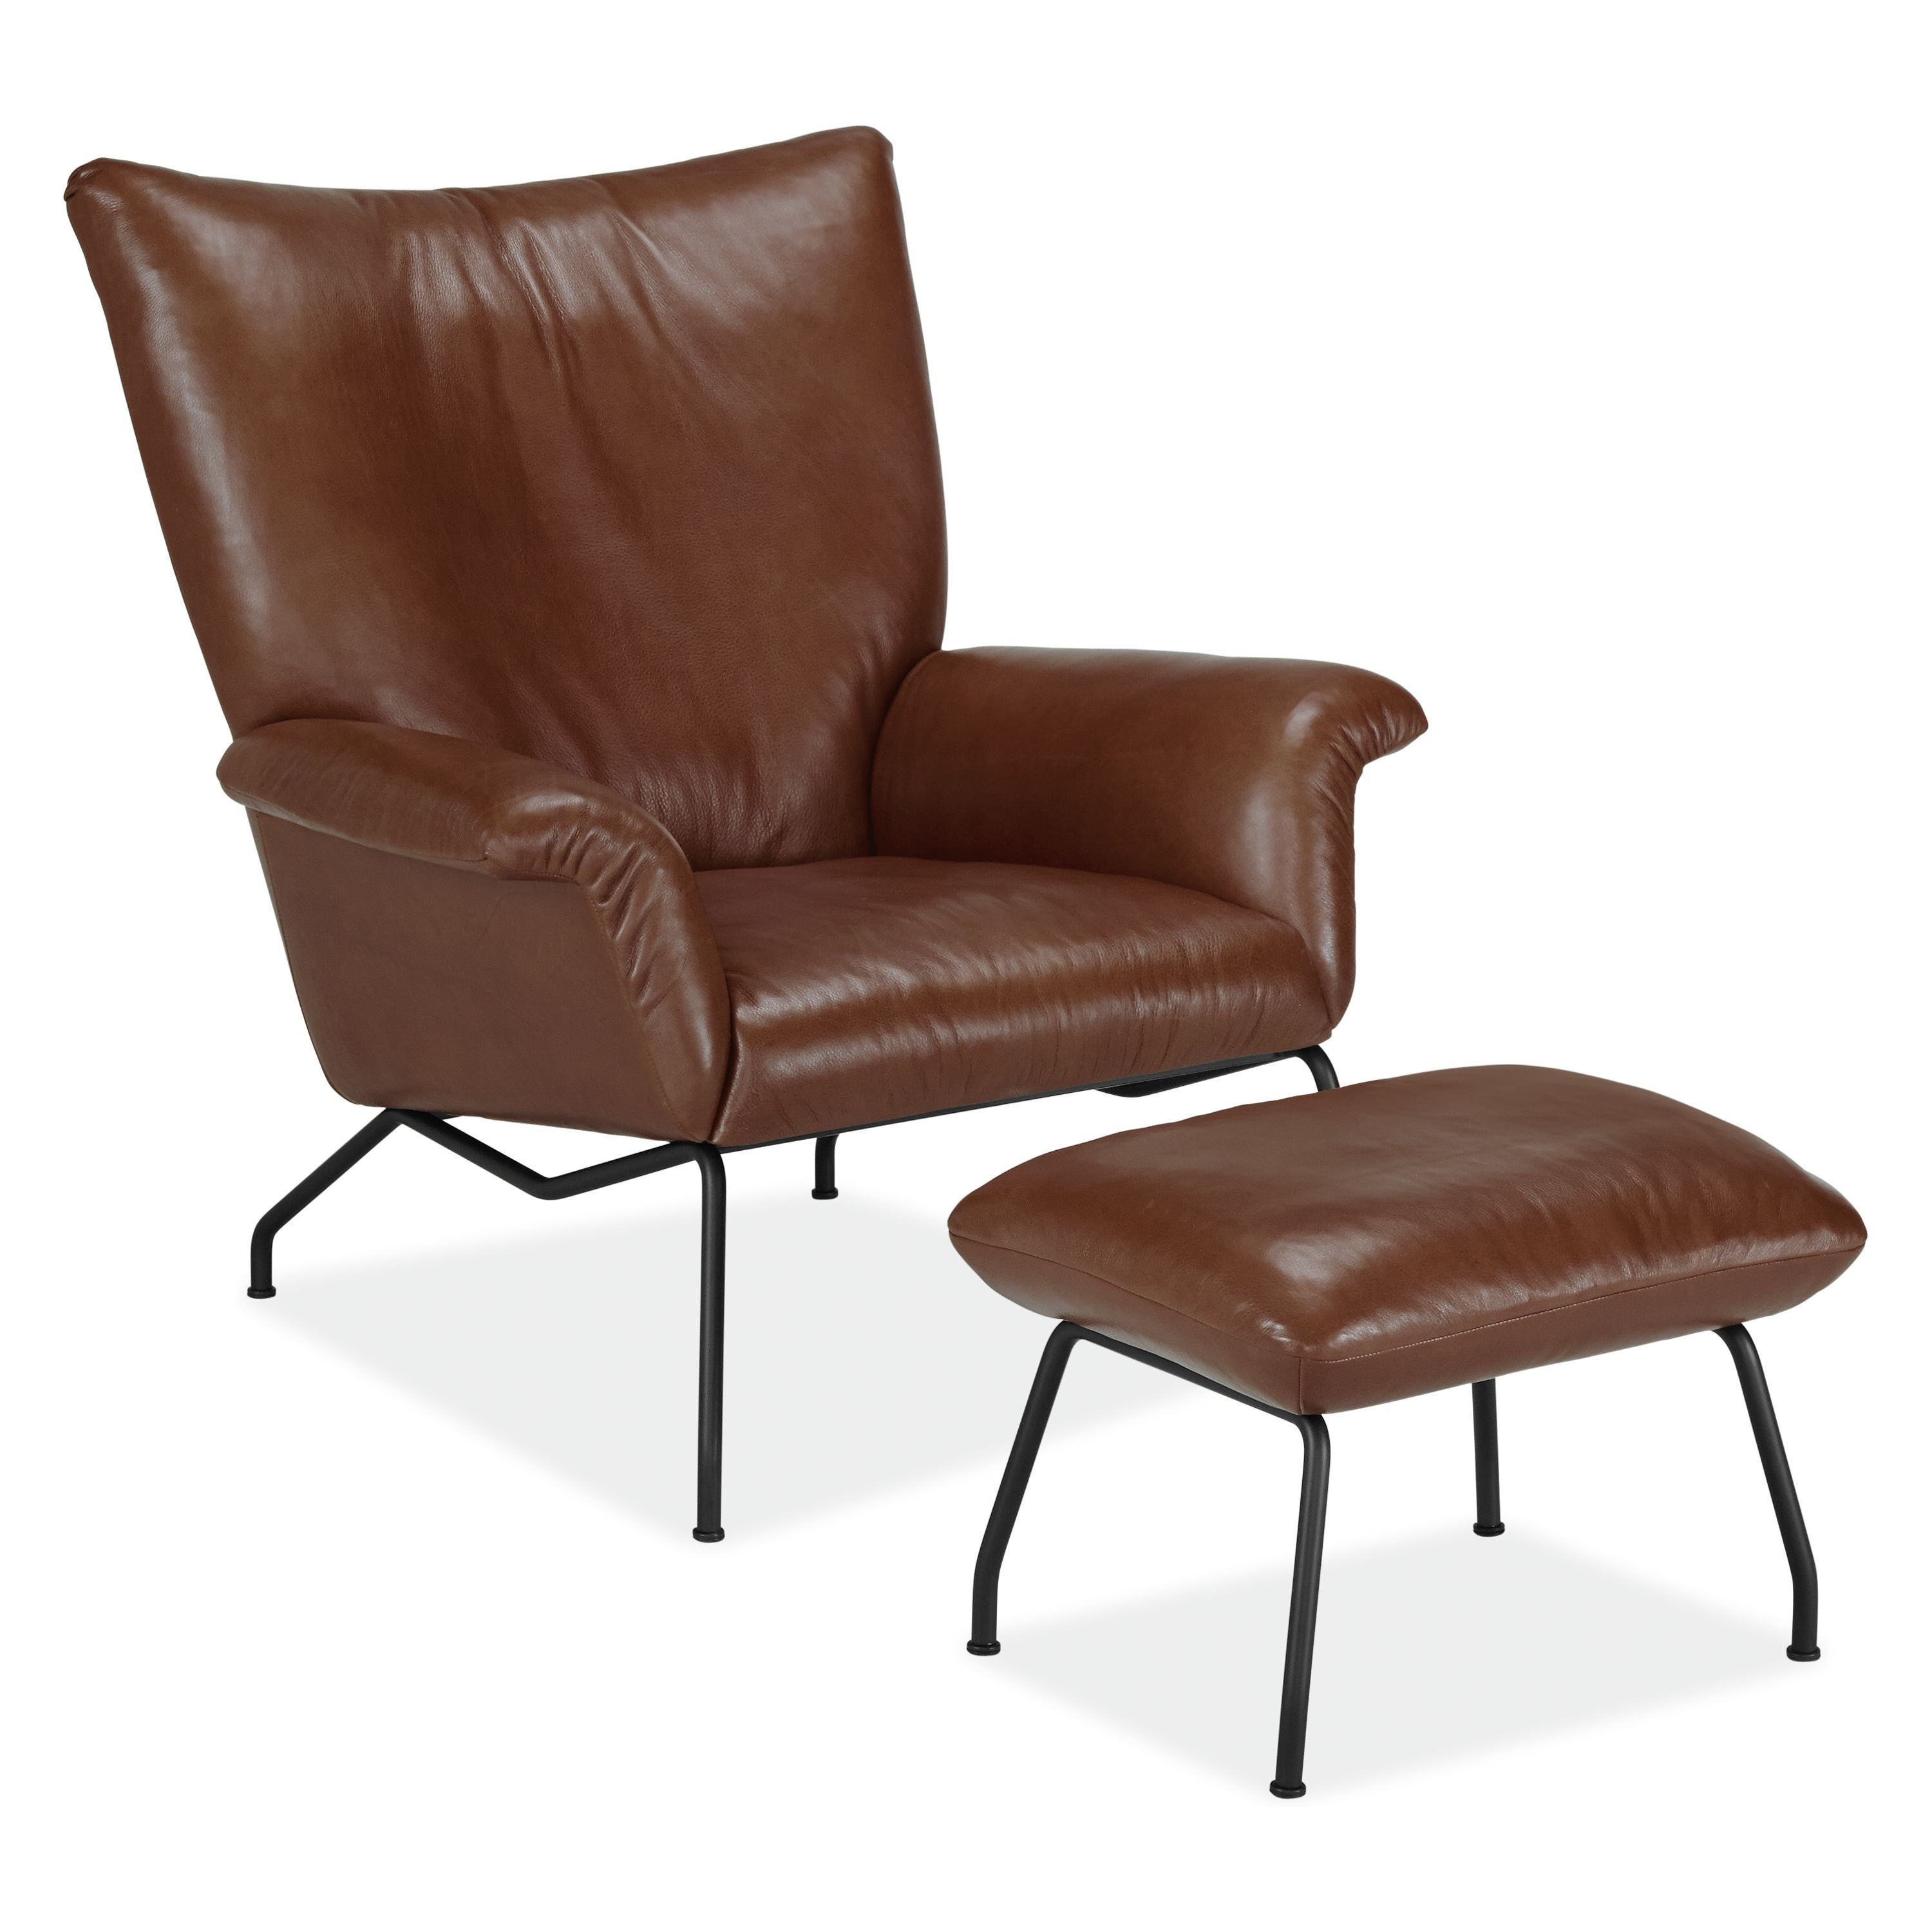 Room Board Paris Leather Ottoman Chair And Ottoman Leather Chair With Ottoman Modern Furniture Living Room